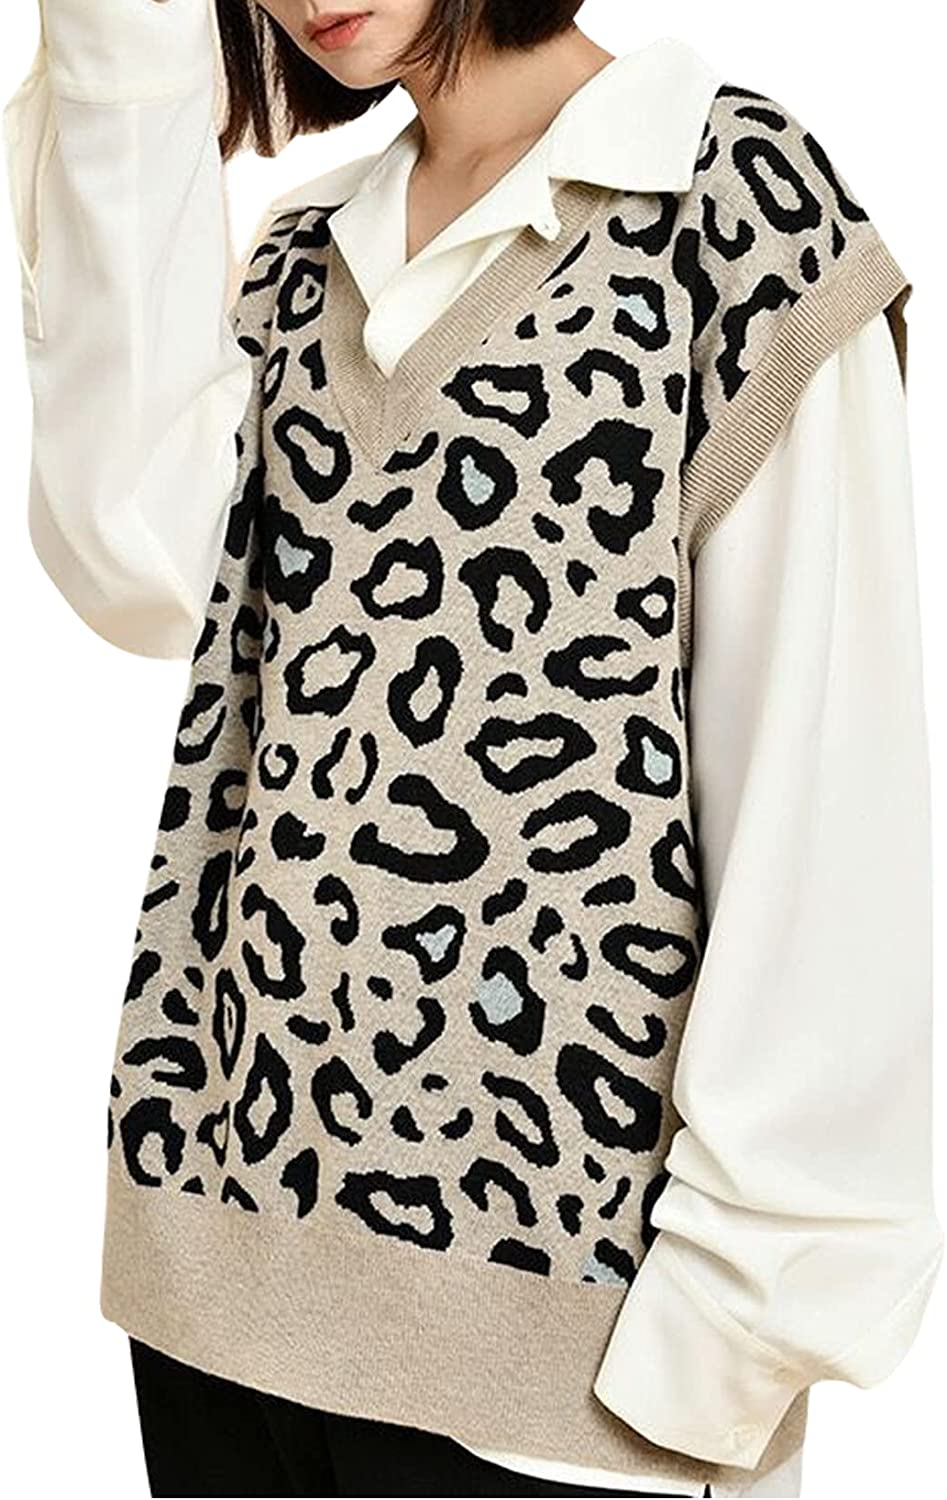 Gihuo Women' s Loose V Neck Leopard Print Sweater Vest Sleeveless Knitted Tops